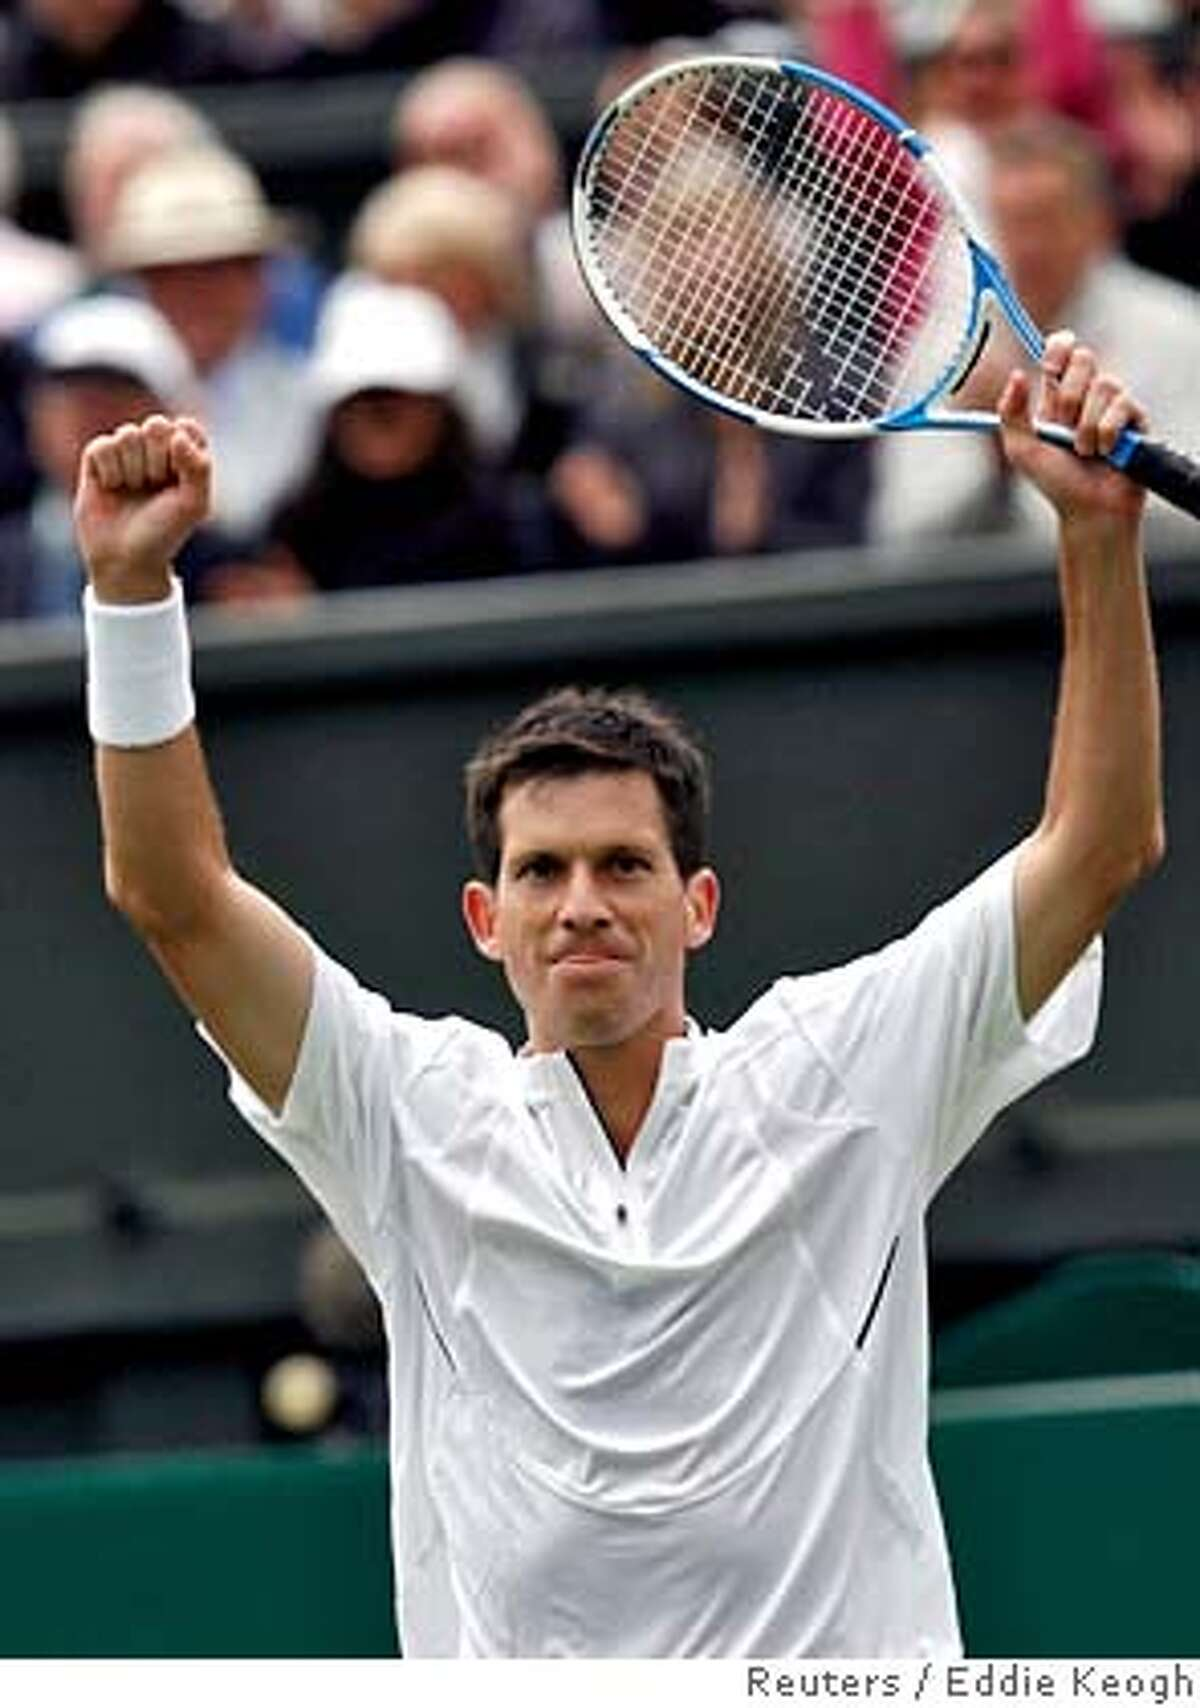 Britain's Tim Henman celebrates on the centre court after beating Spain's Carlos Moya at the Wimbledon tennis championships in London June 26, 2007. REUTERS/Eddie Keogh (BRITAIN) Ran on: 06-27-2007 Tim Henman celebrates his win over Spains Carlos Moya at Centre Court.